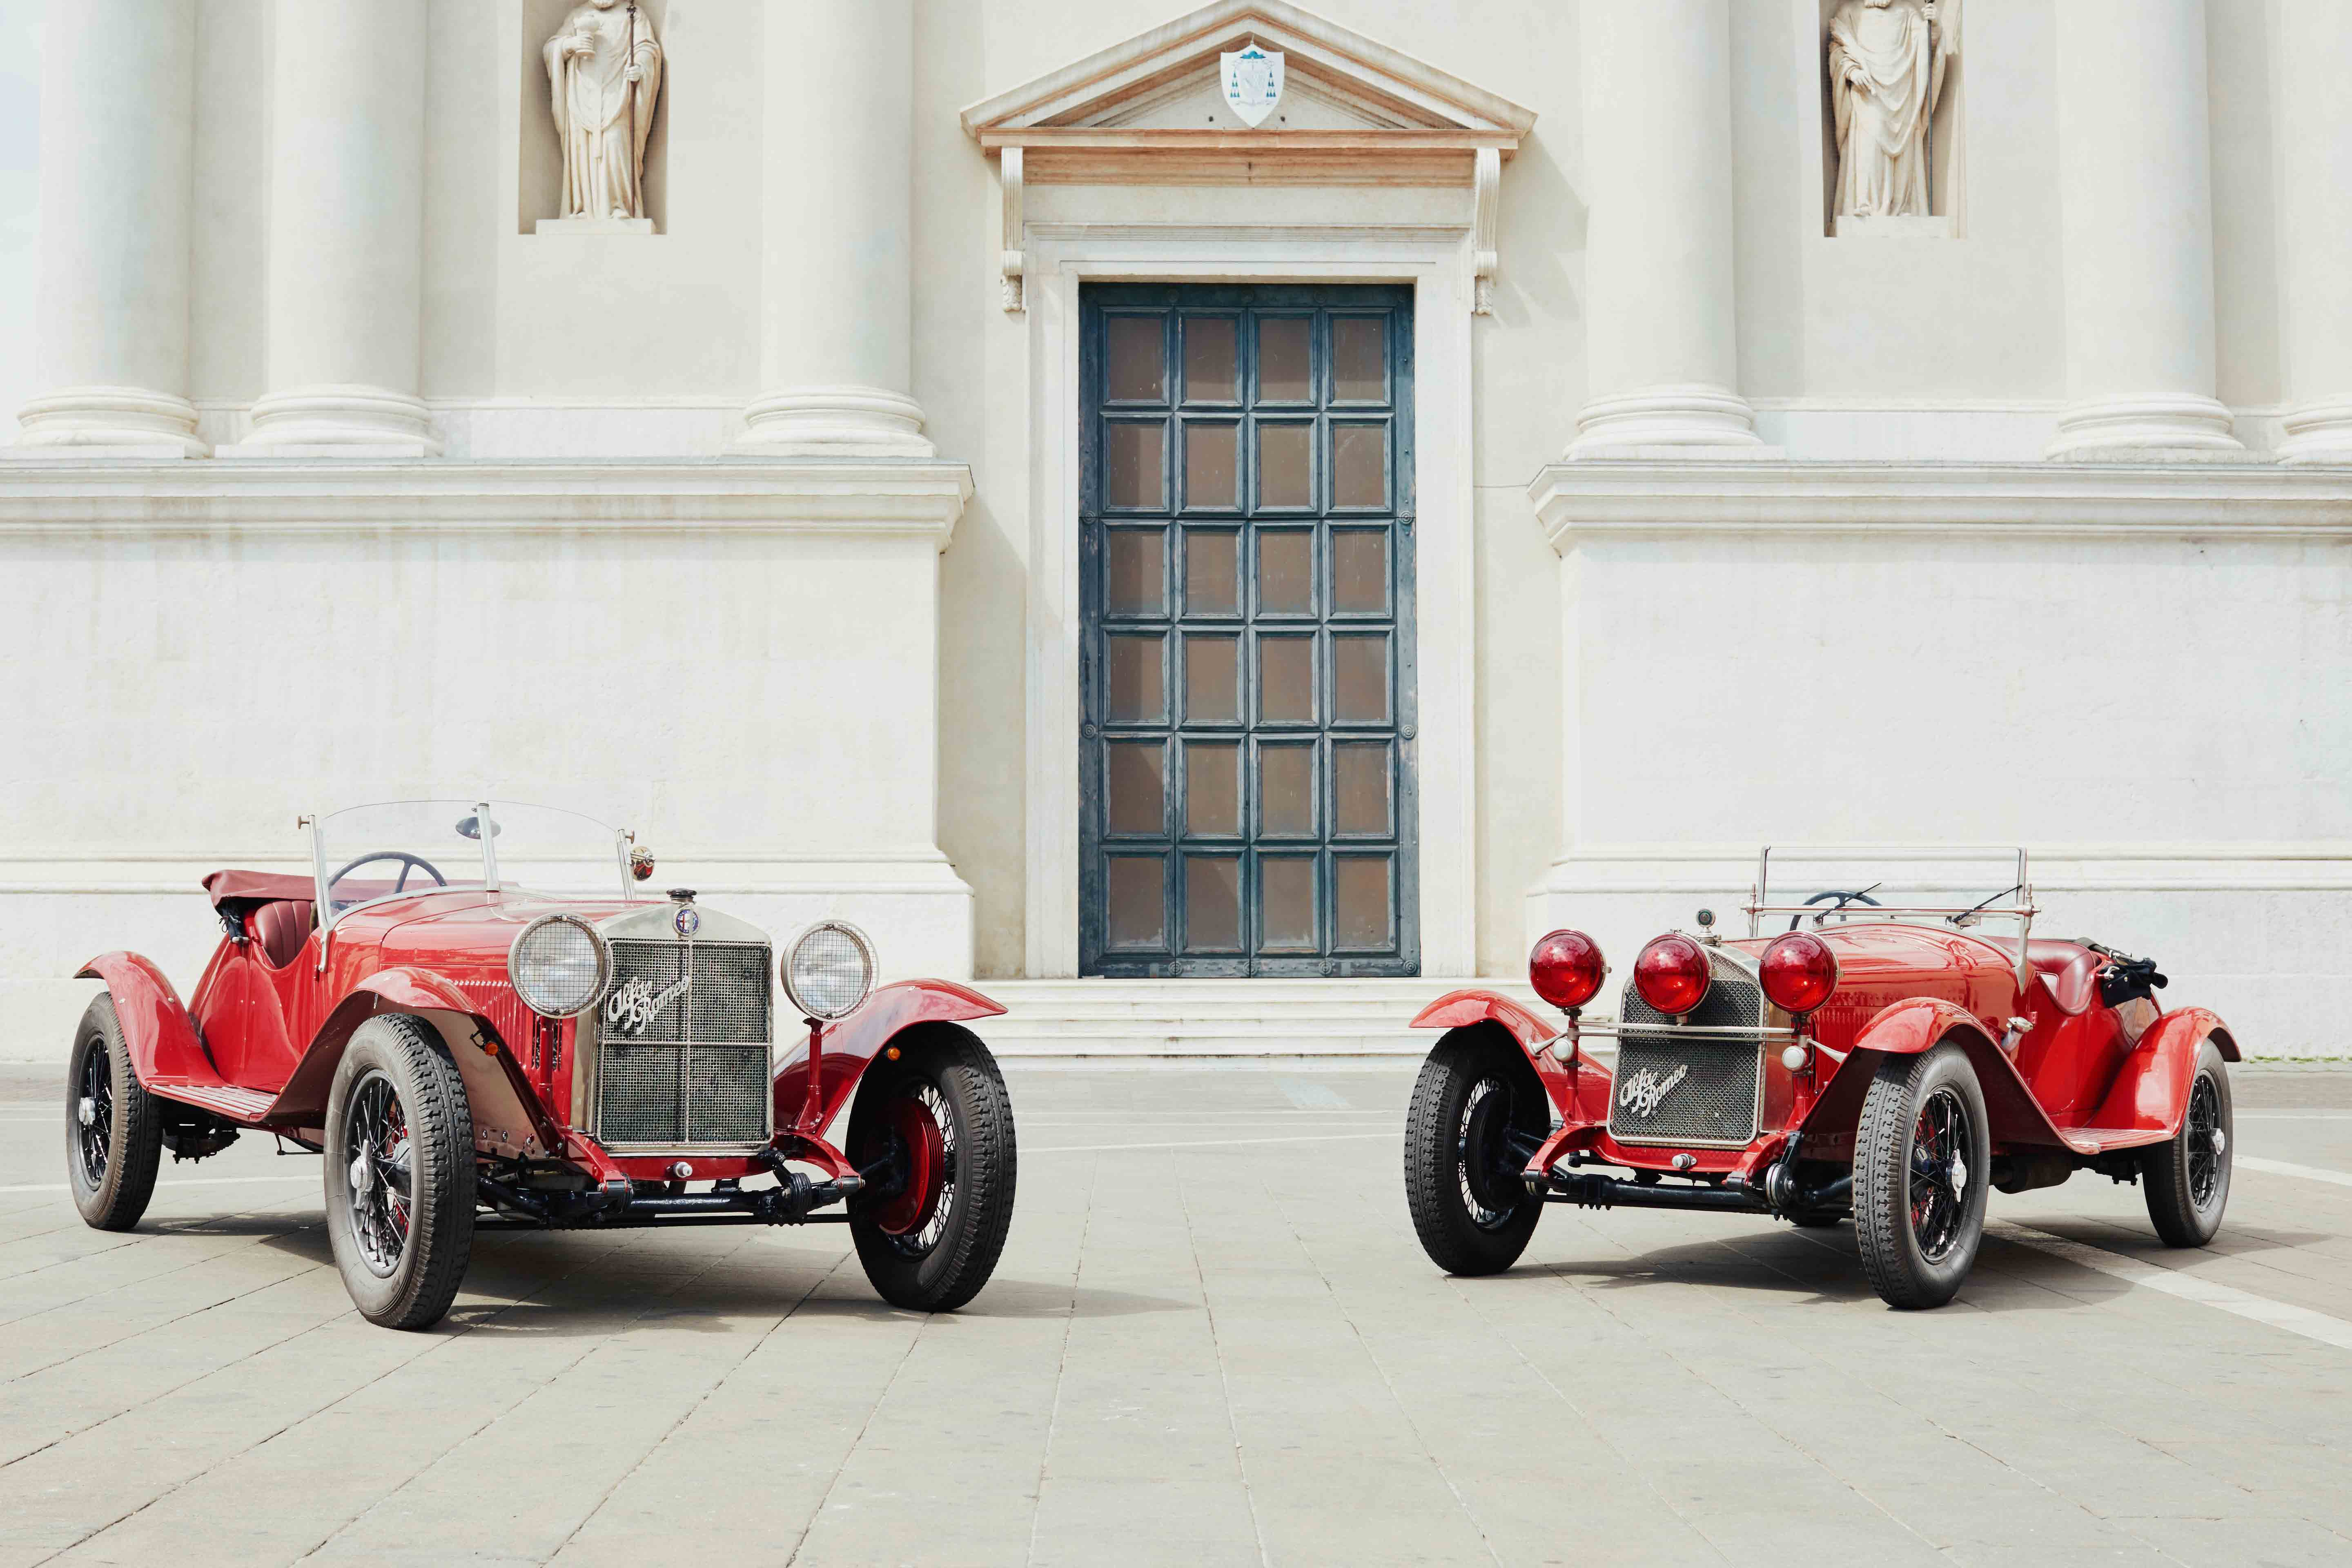 1928 Alfa Romeo 1500 Super Sport and 6C 1750 Gran Sport from the FCA Heritage collection stand ready for the 2018 Mille Miglia